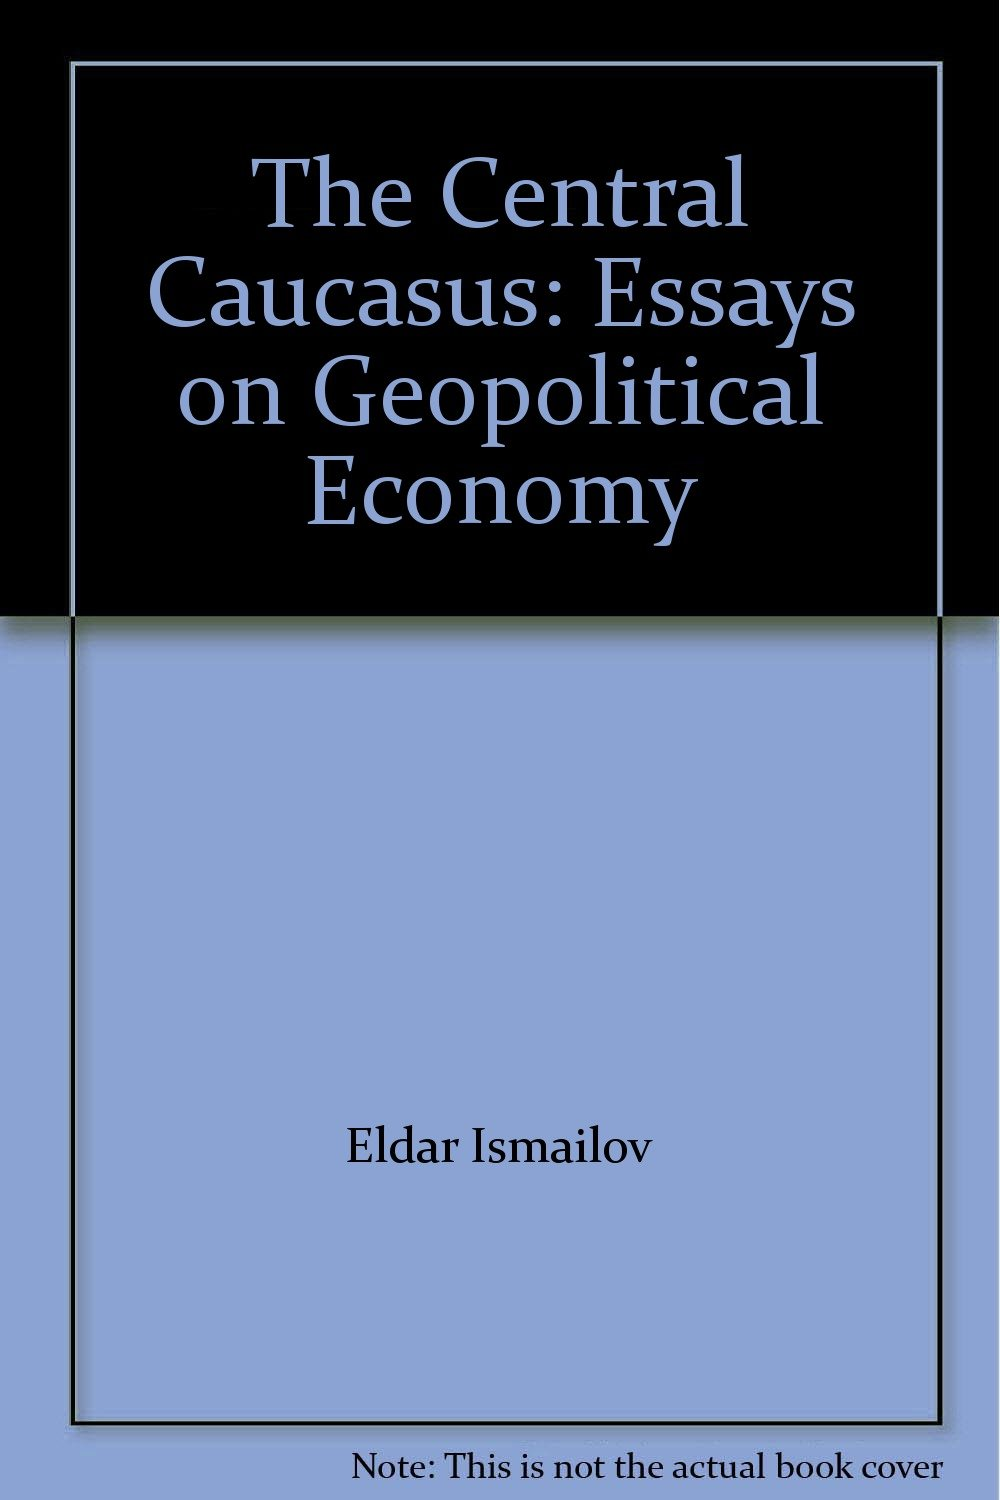 Download The Central Caucasus: Essays on Geopolitical Economy PDF